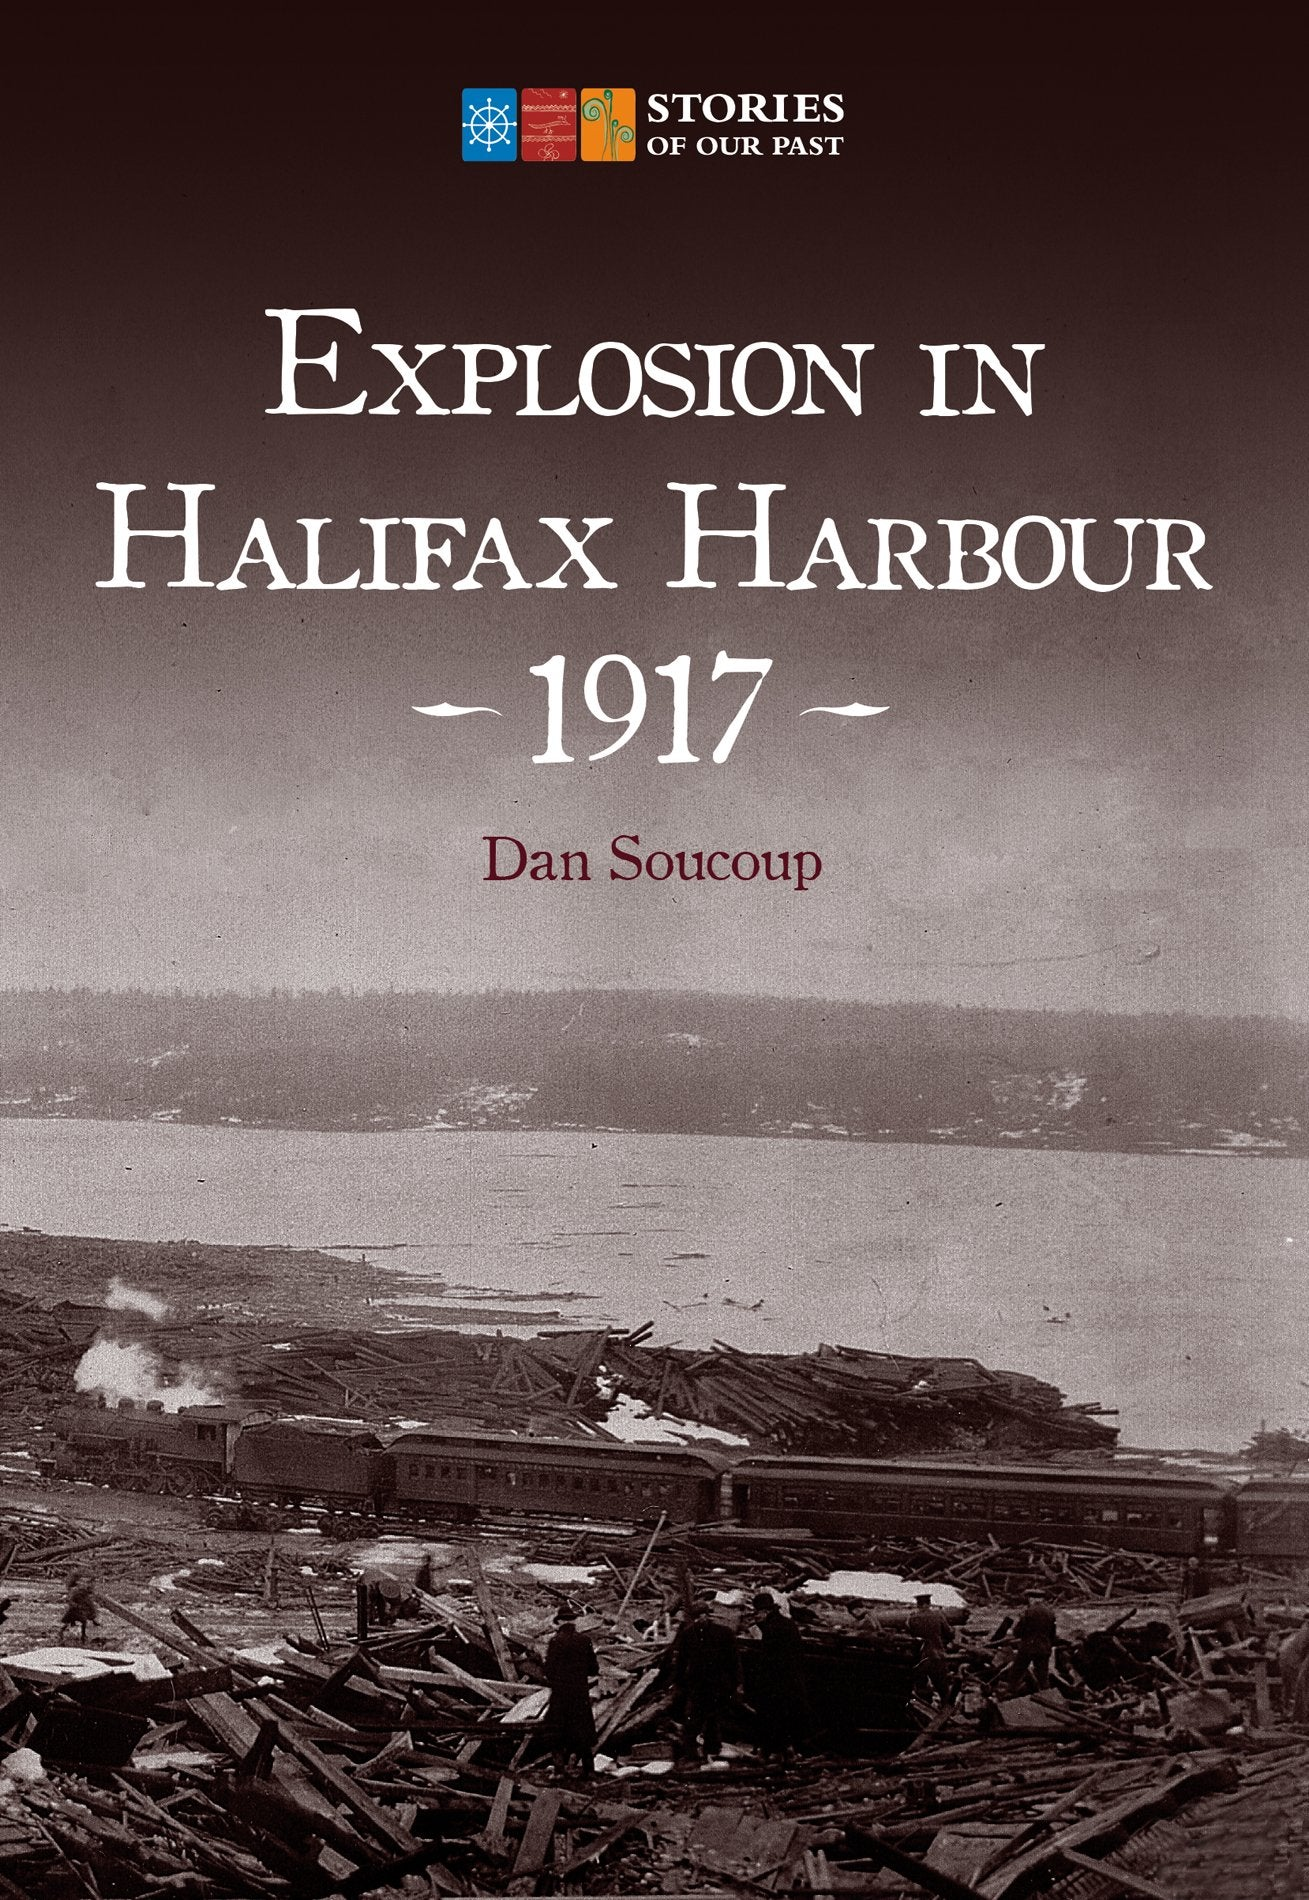 Explosion in Halifax Harbour, 1917